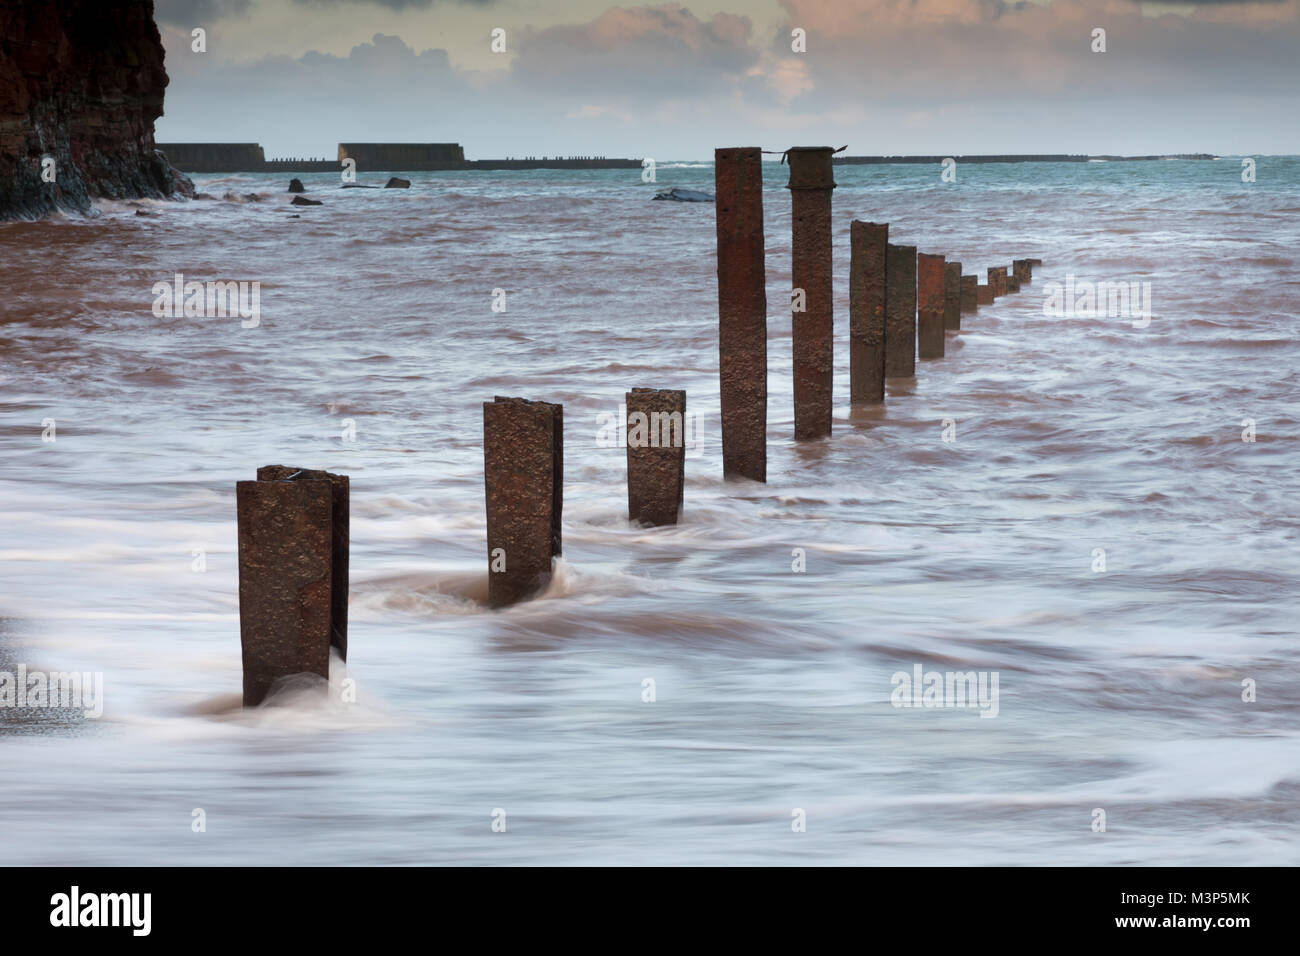 North beach on Heligoland with decayed pier - Stock Image